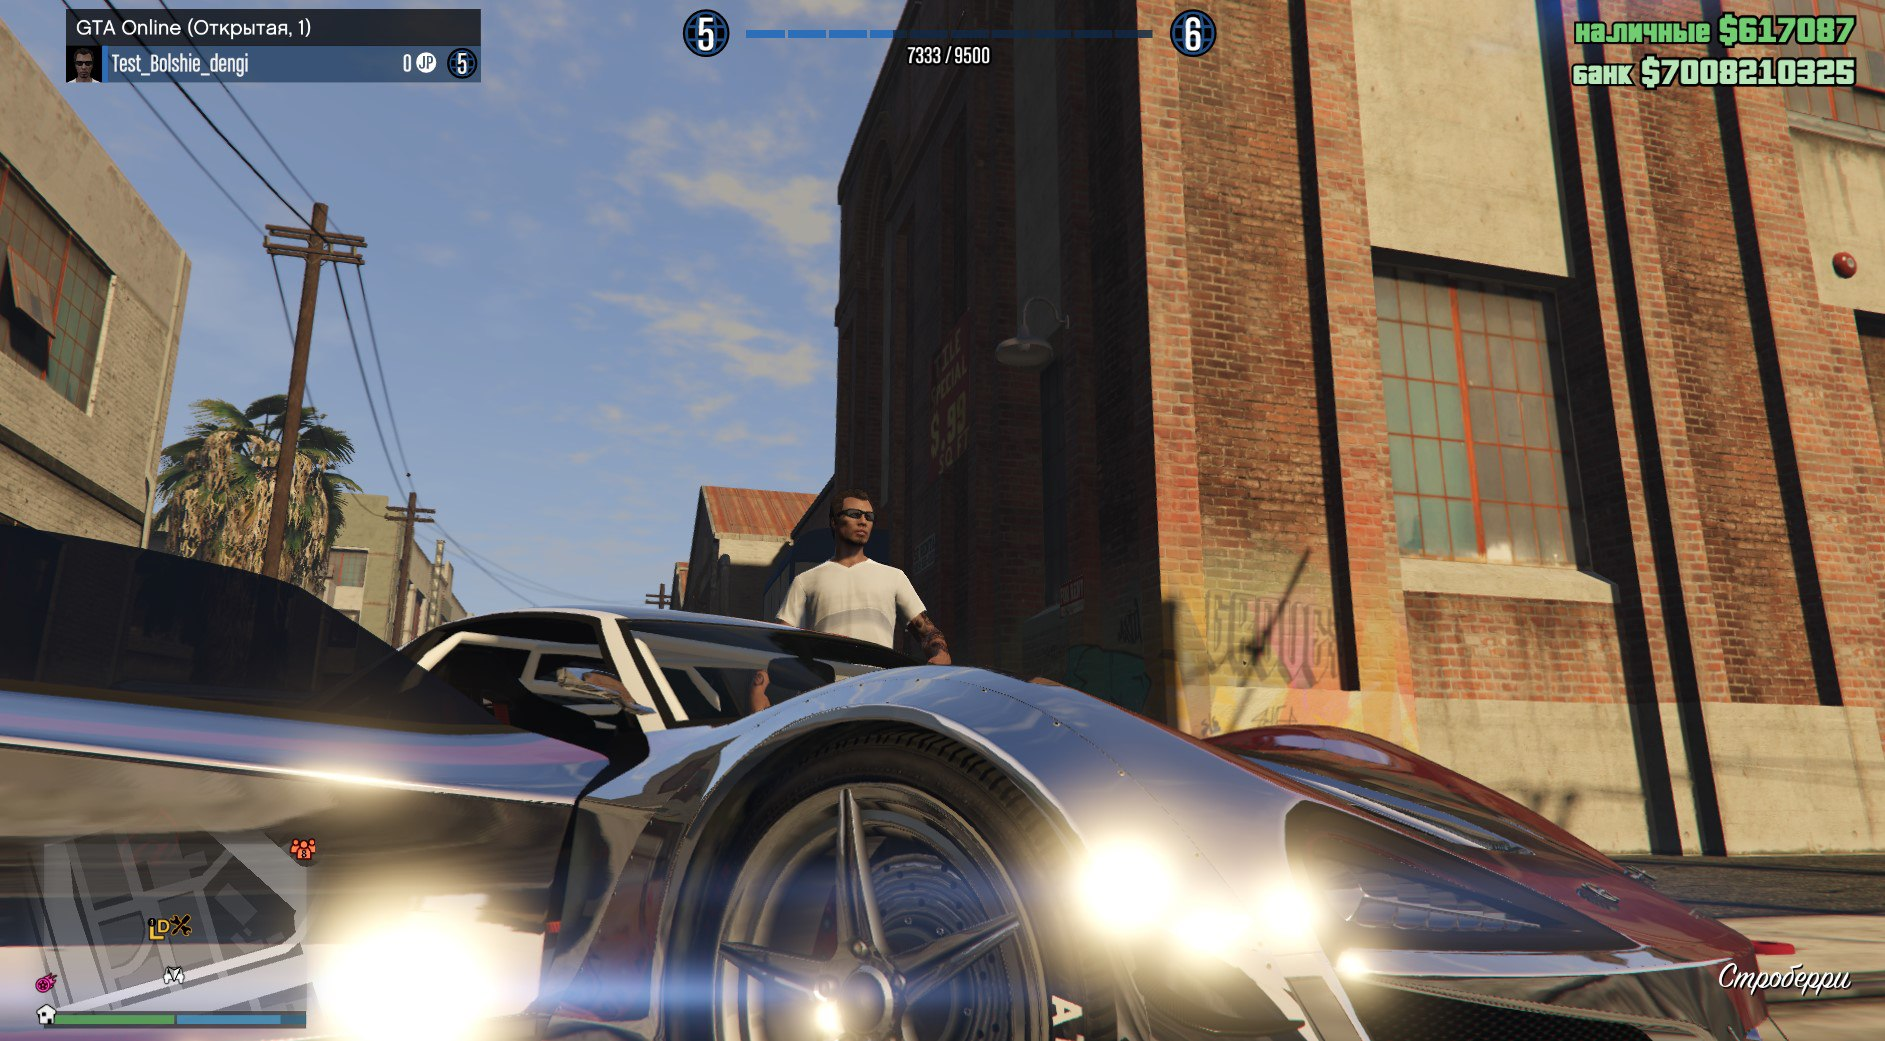 GTA V Online - The game currency  100.000.000 GTA$